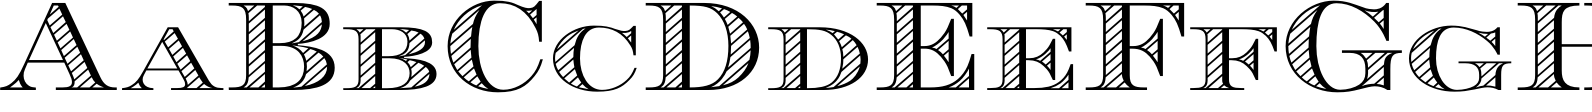 Engravers DT AltShaded Font